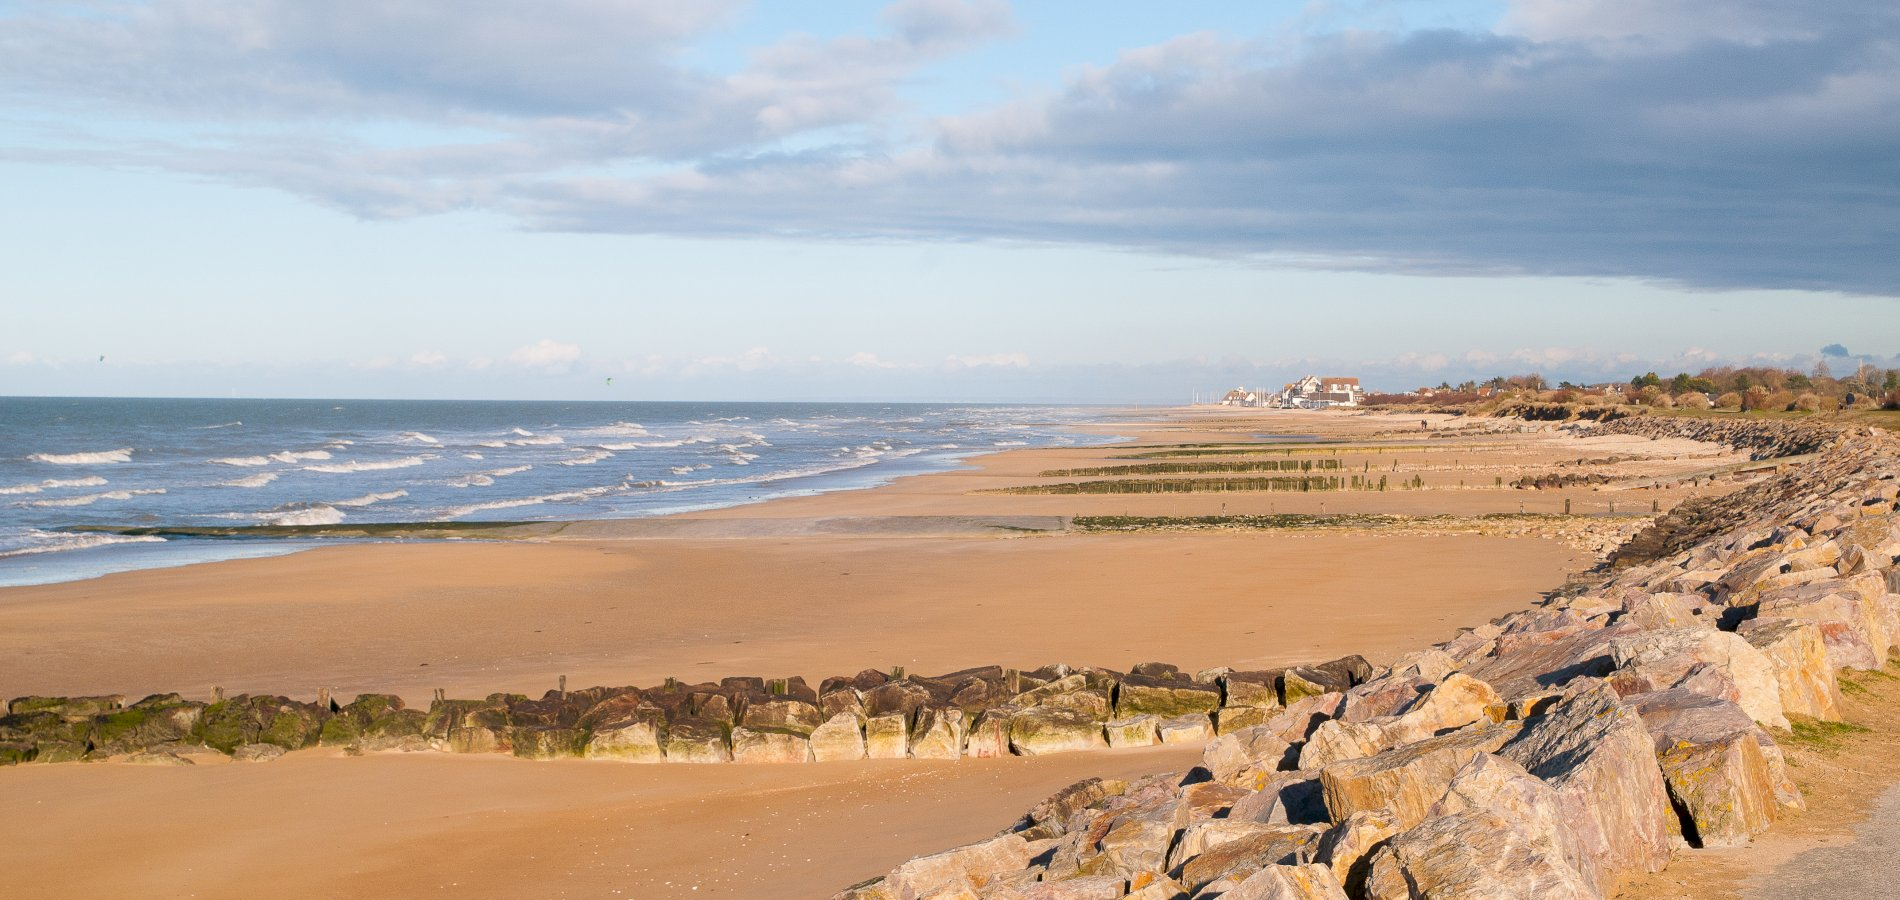 Ophorus Tours - Canadian D-DAY Beaches & Sights Small Group Private Shore Excursion From Cherbourg